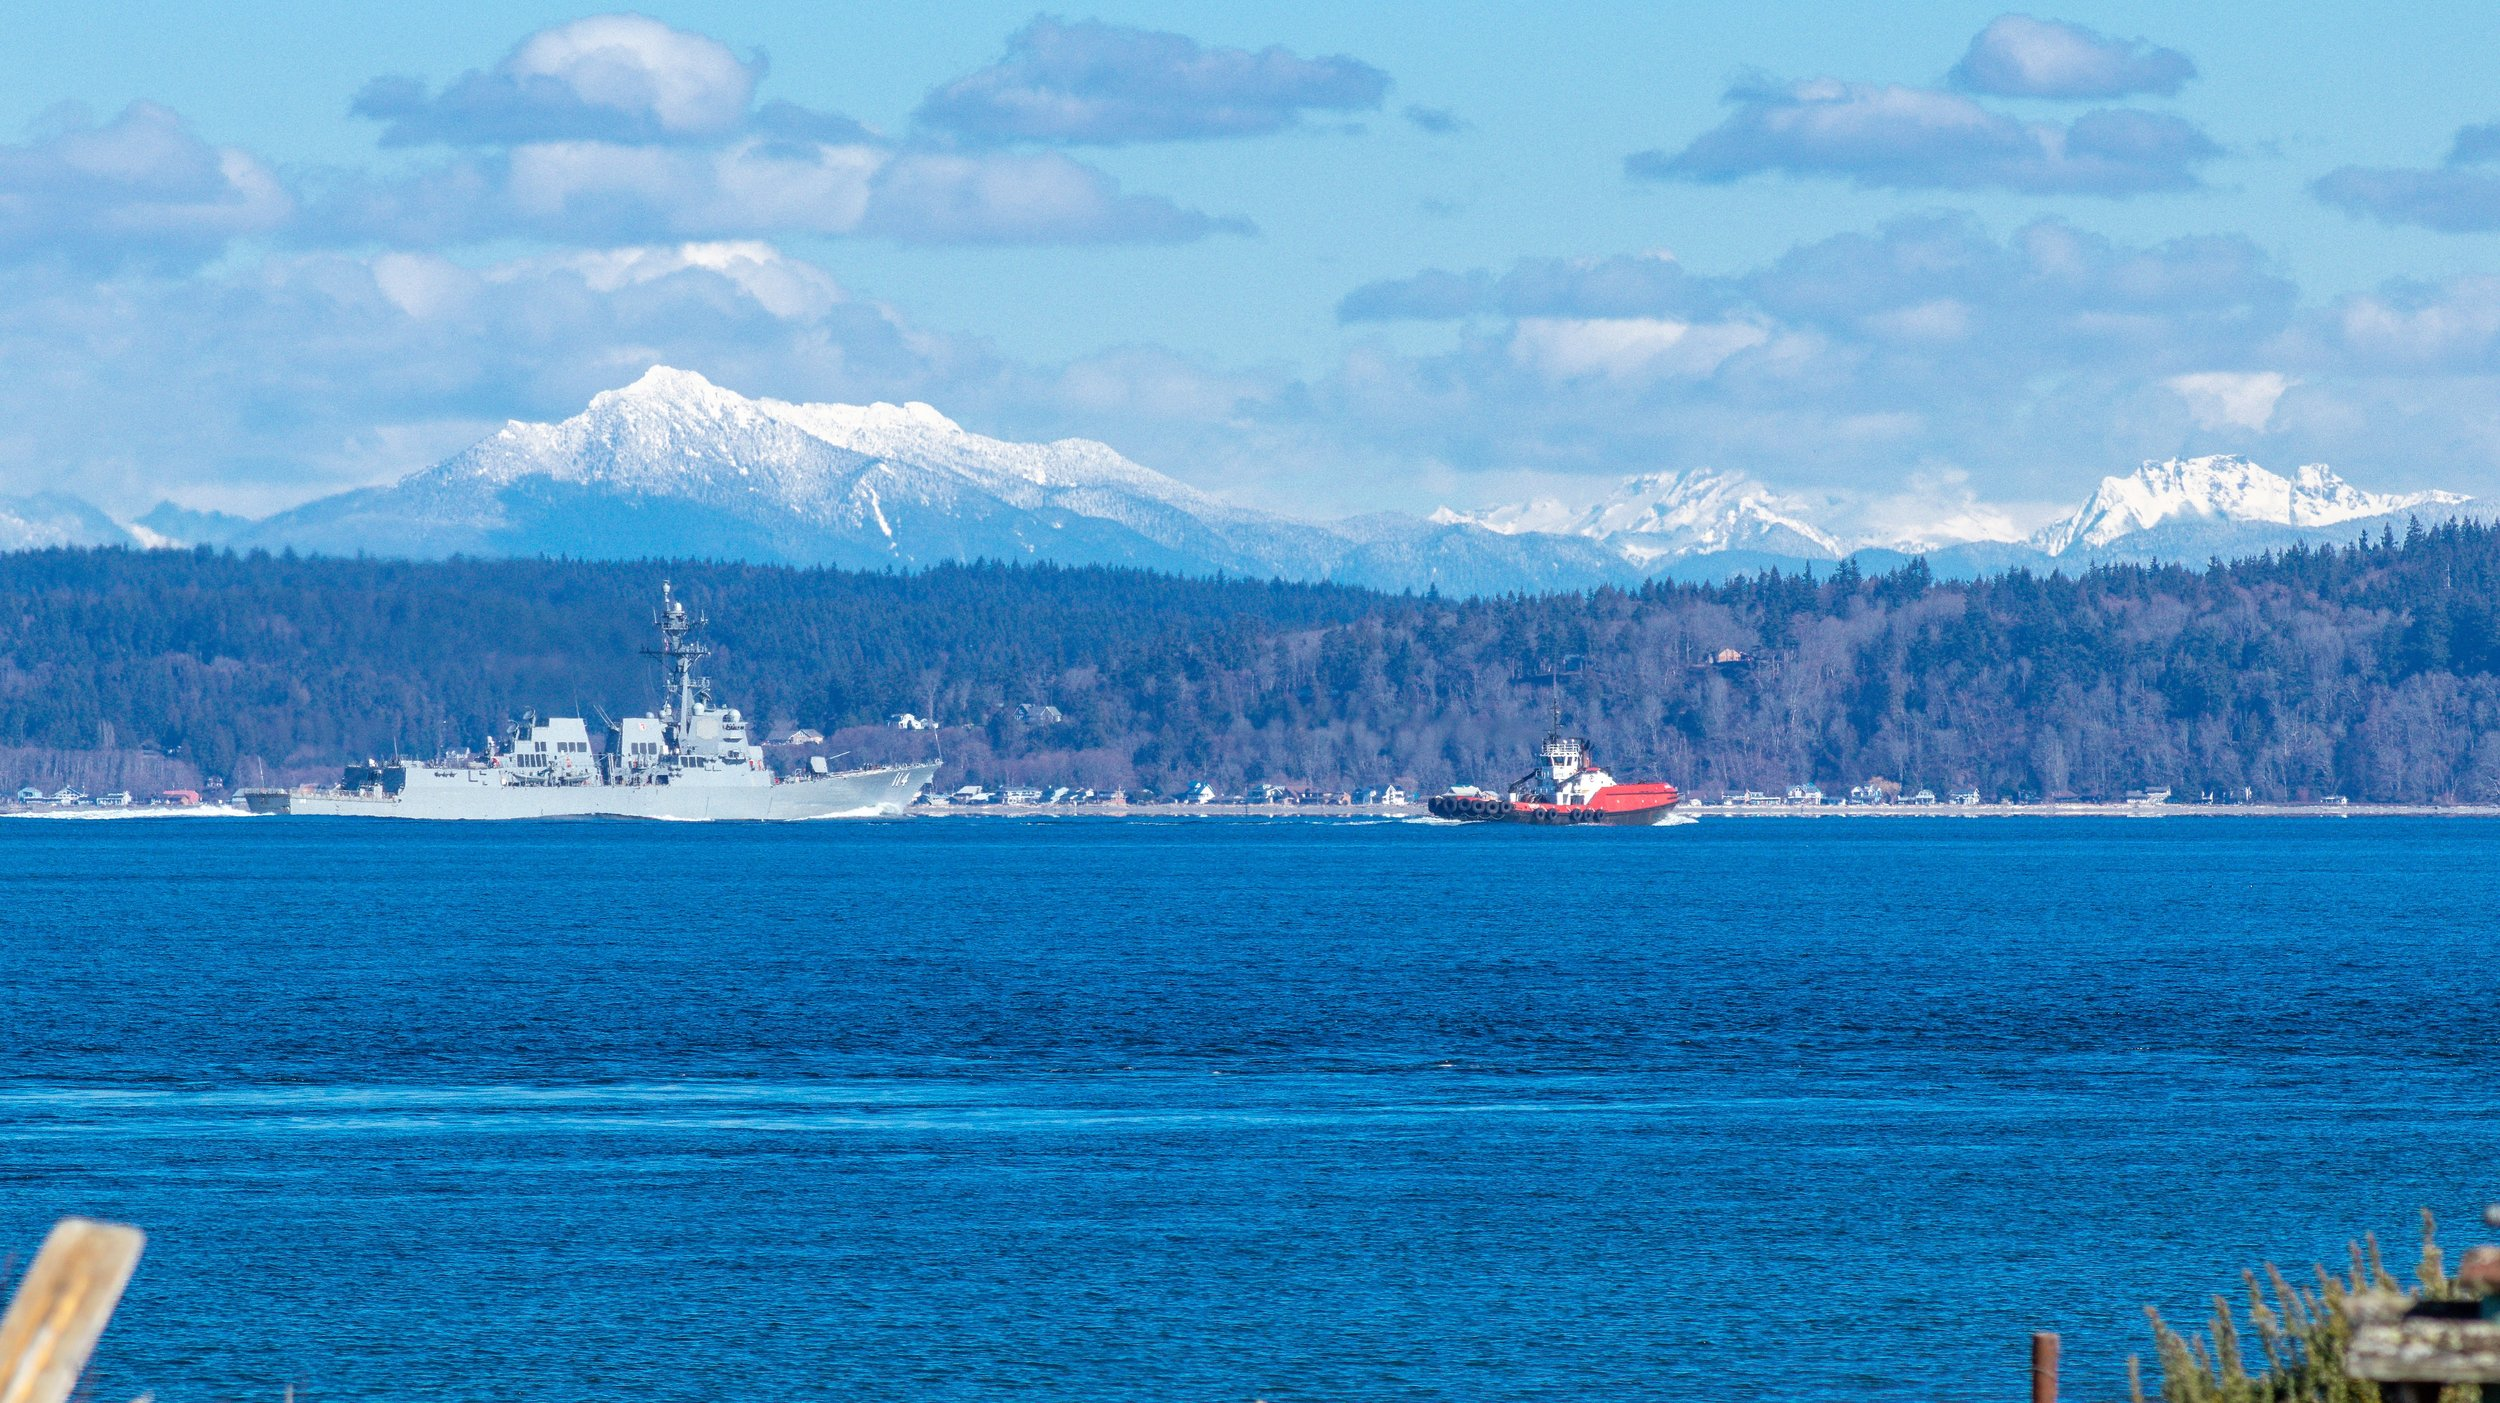 USS    Ralph Johnson  (DDG-114)  on the Puget Sound with the Cascades in the background